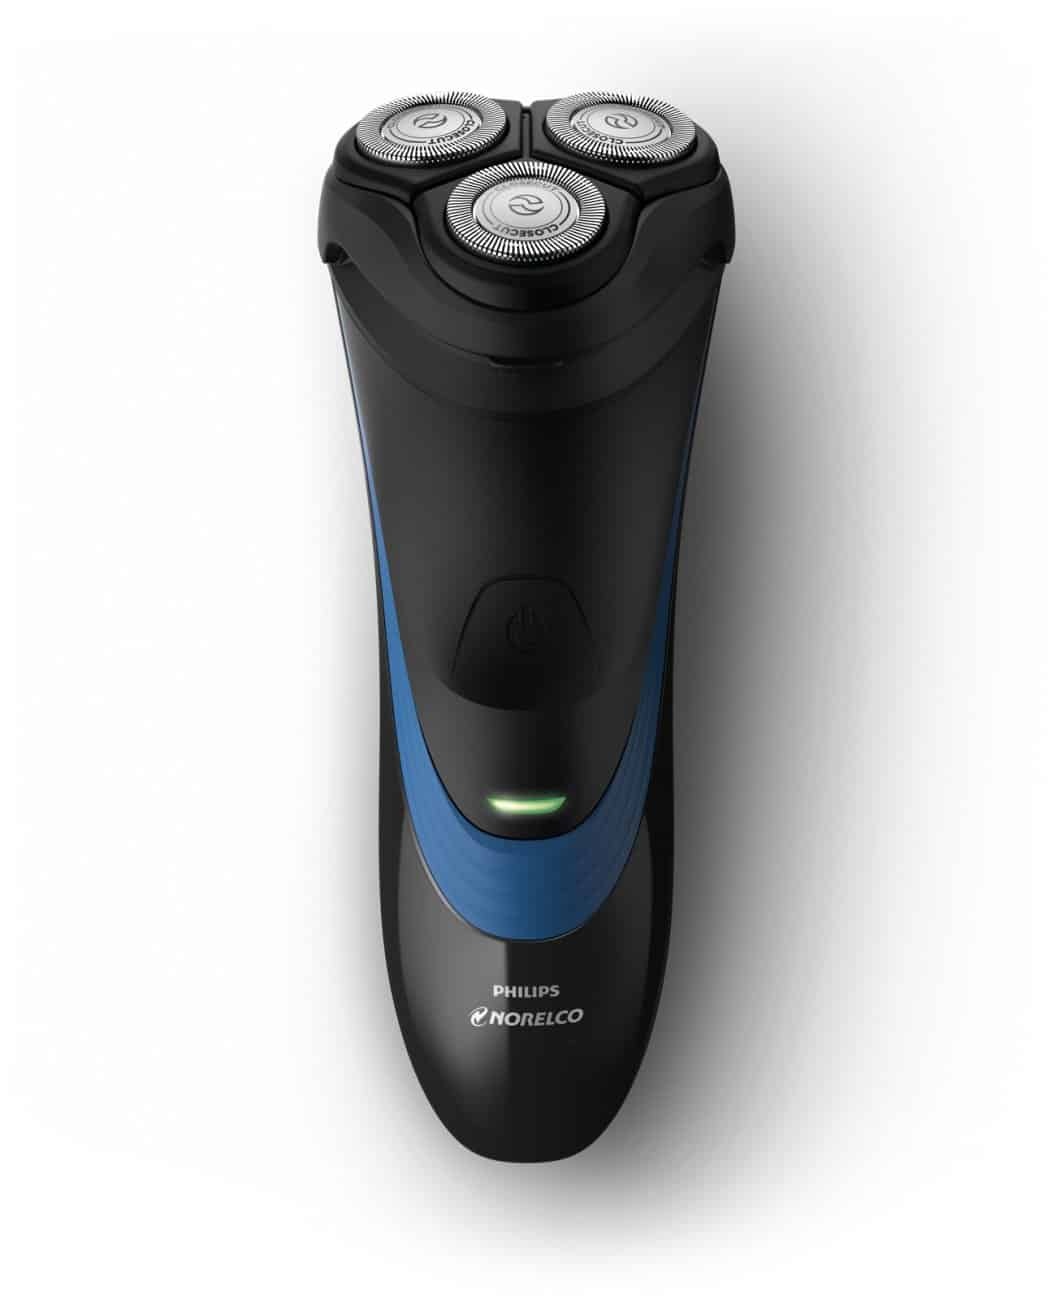 Philips Norelco 2100 Electric Shaver